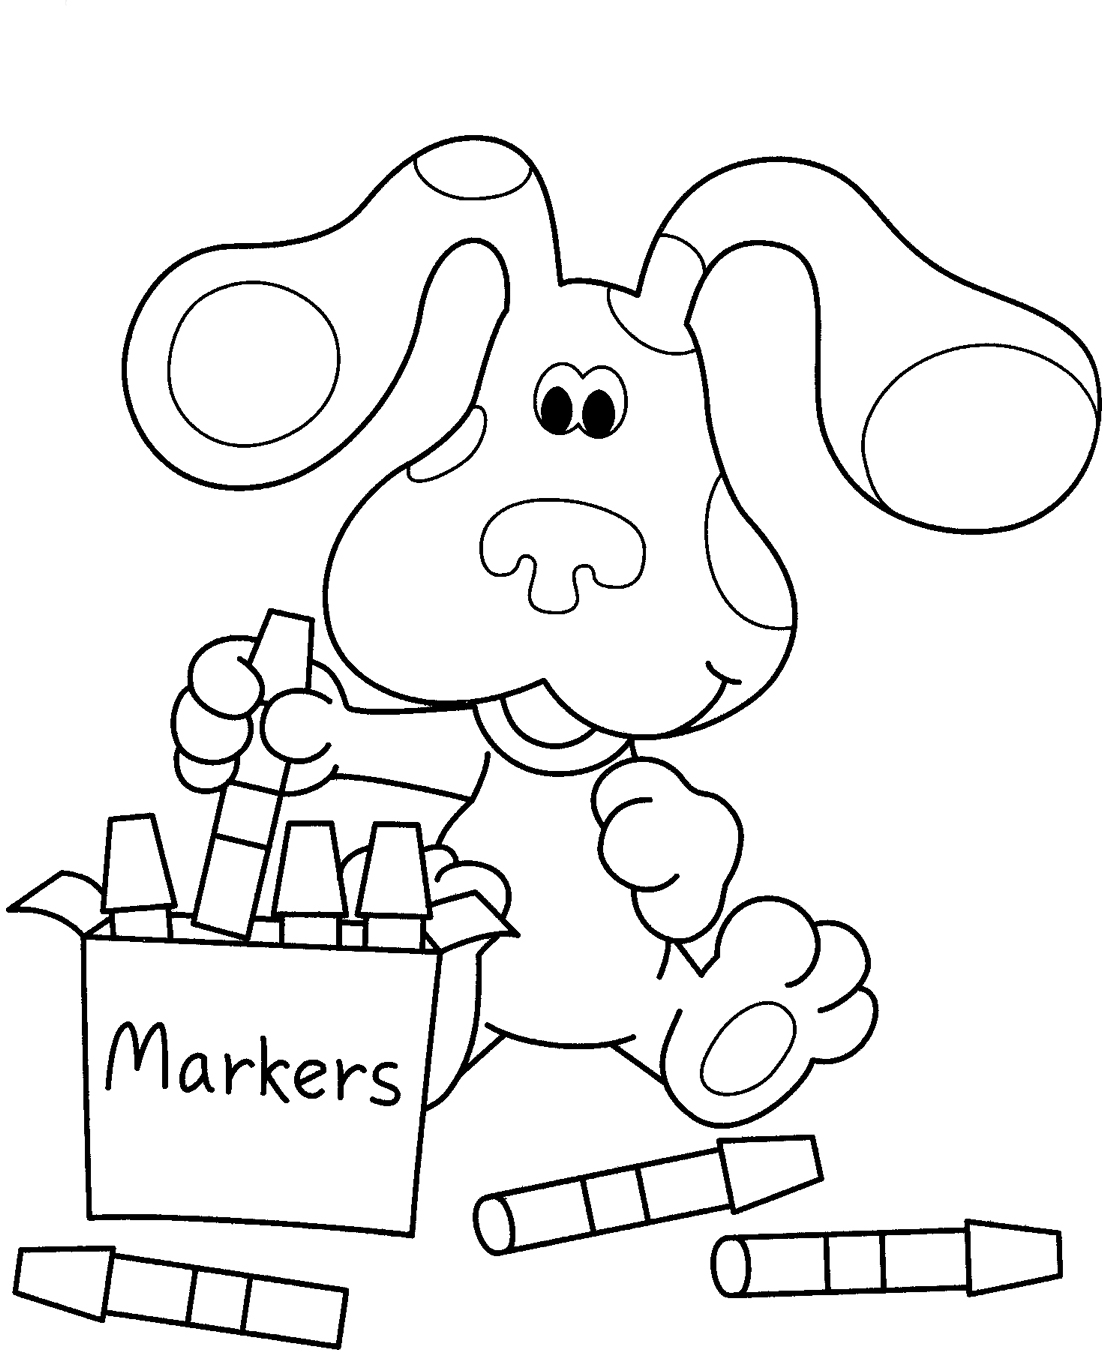 blues clues coloring pages free printable blues clues coloring pages for kids coloring pages clues blues